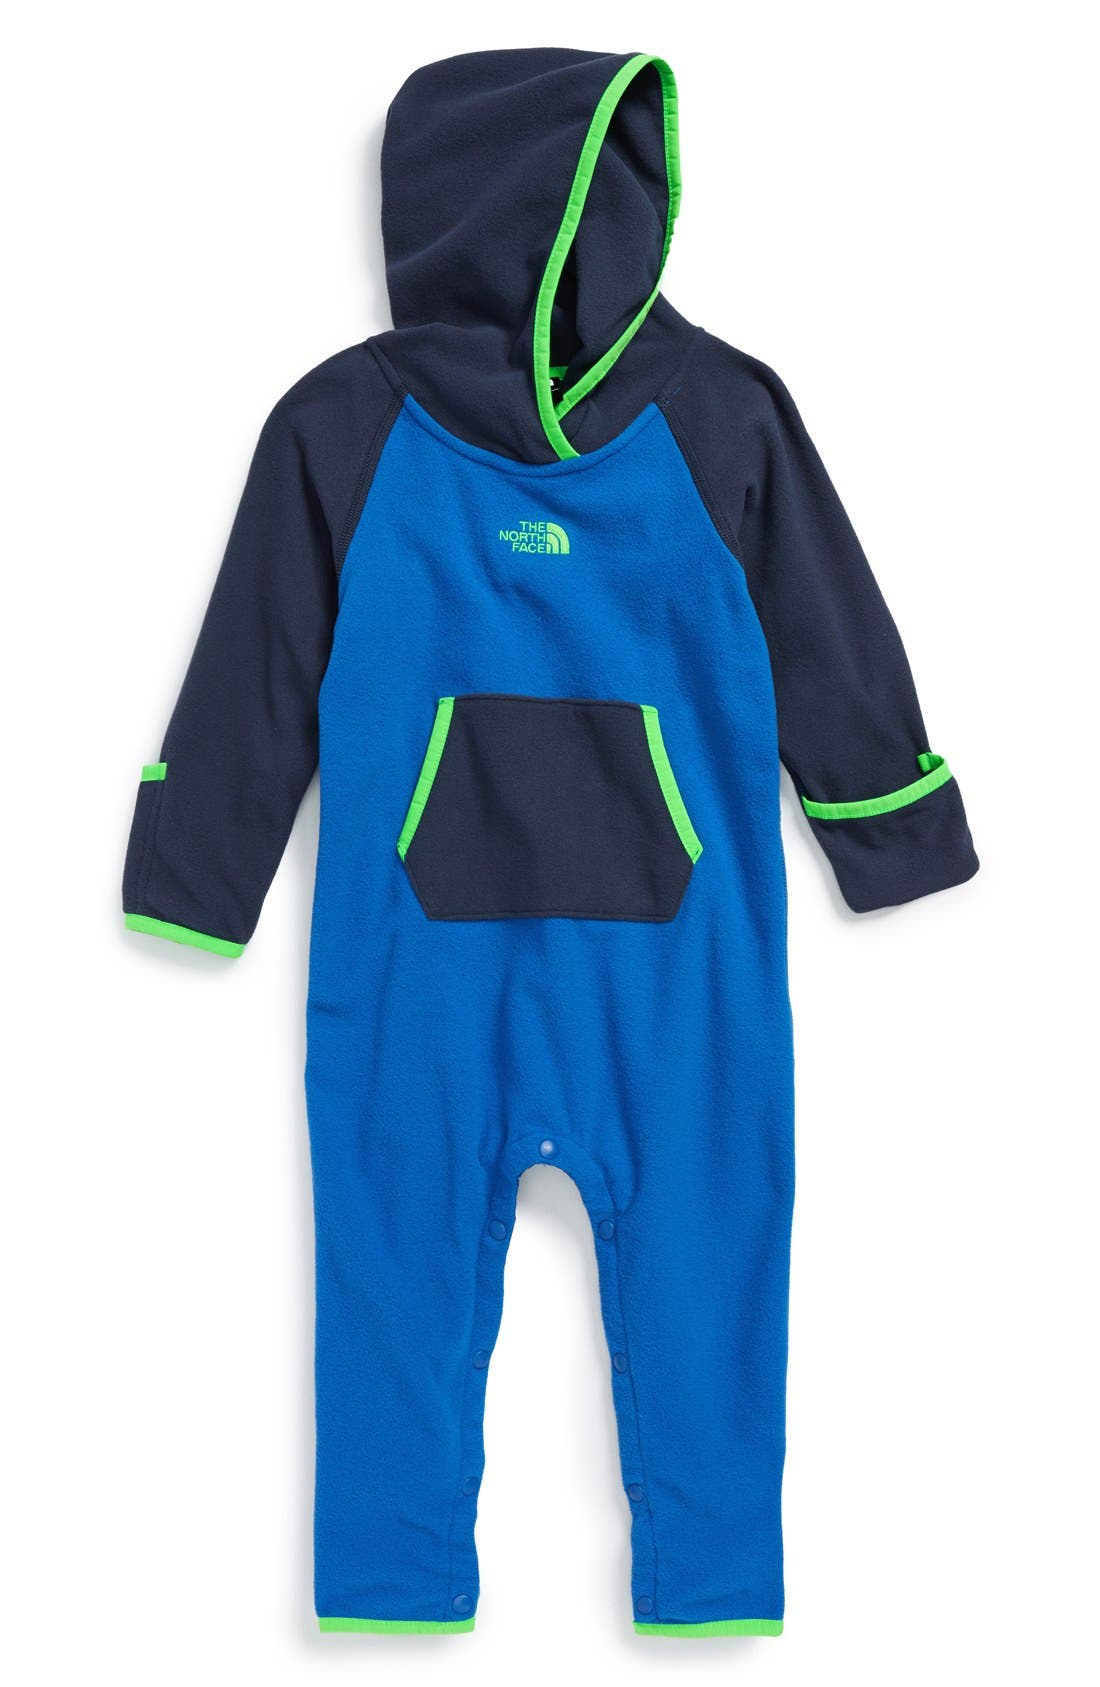 Main Image - The North Face 'Glacier' One-Piece (Baby Boys) (Regular Retail Price: $50.00)